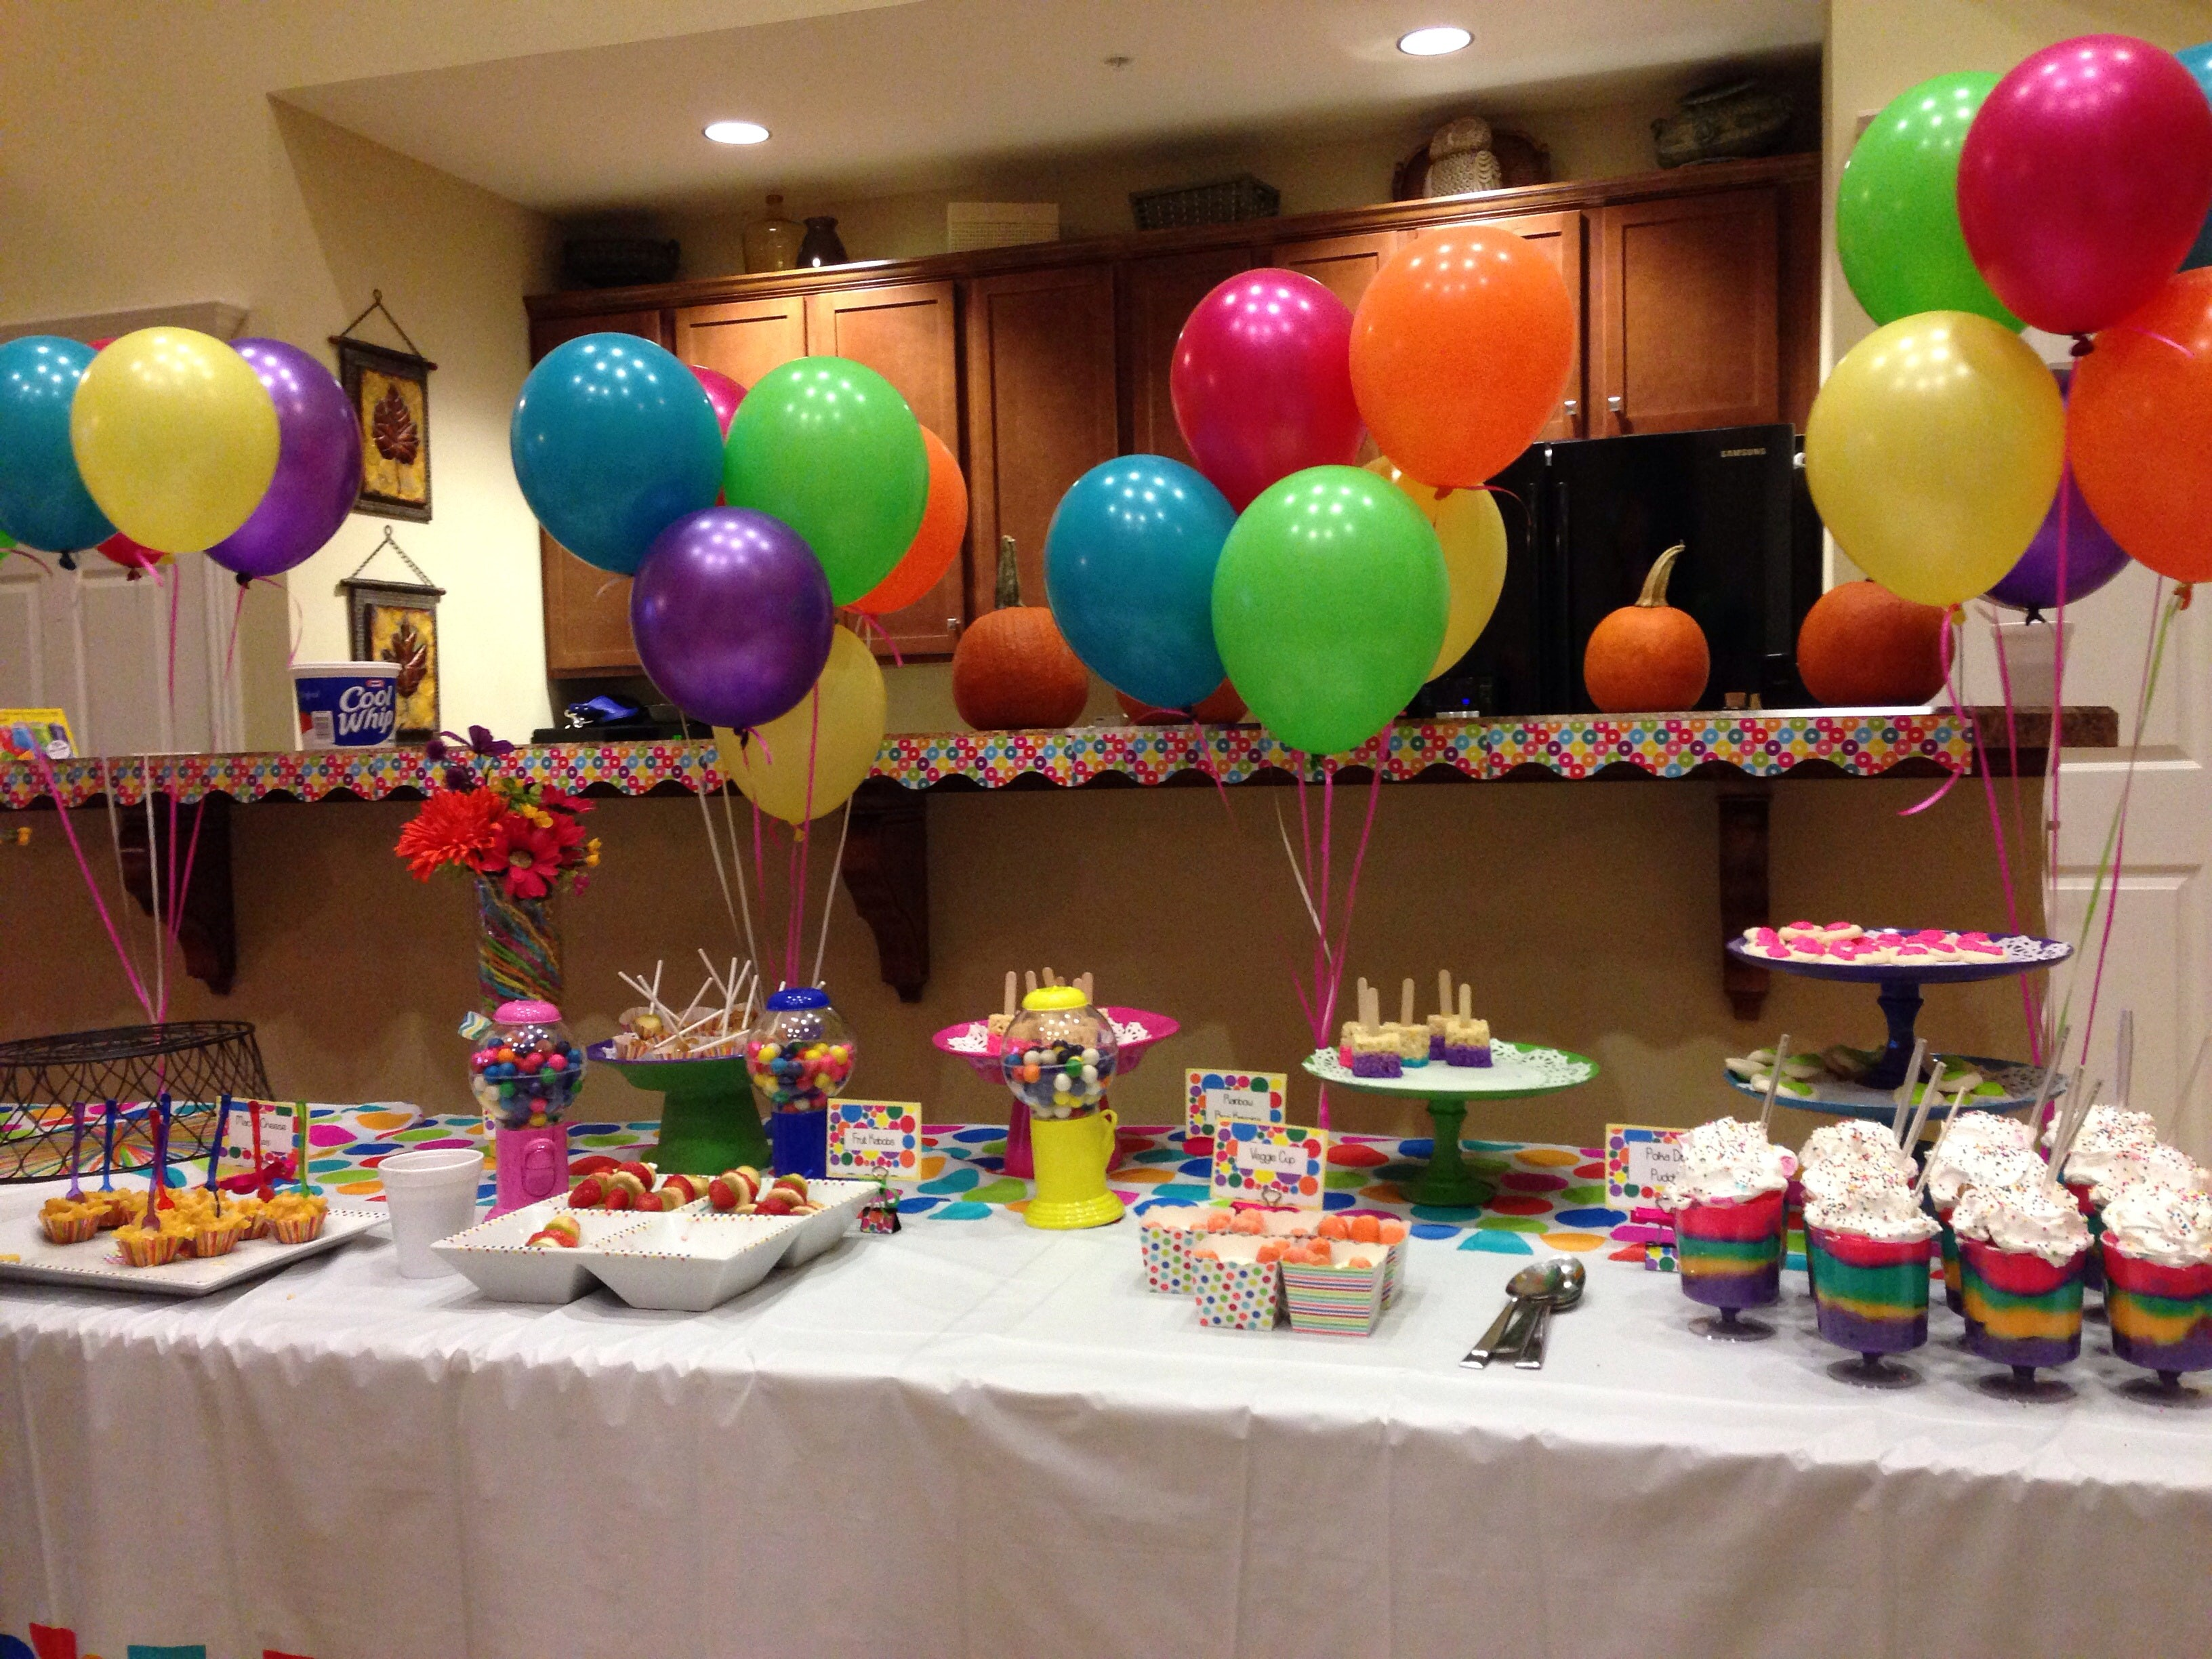 2 year old birthday party themes ; 2-year-old-birthday-party-fantastic-gallery-concerning-gallery-2-year-old-birthday-party-ideas-party-decor-library-of-2-year-old-birthday-party